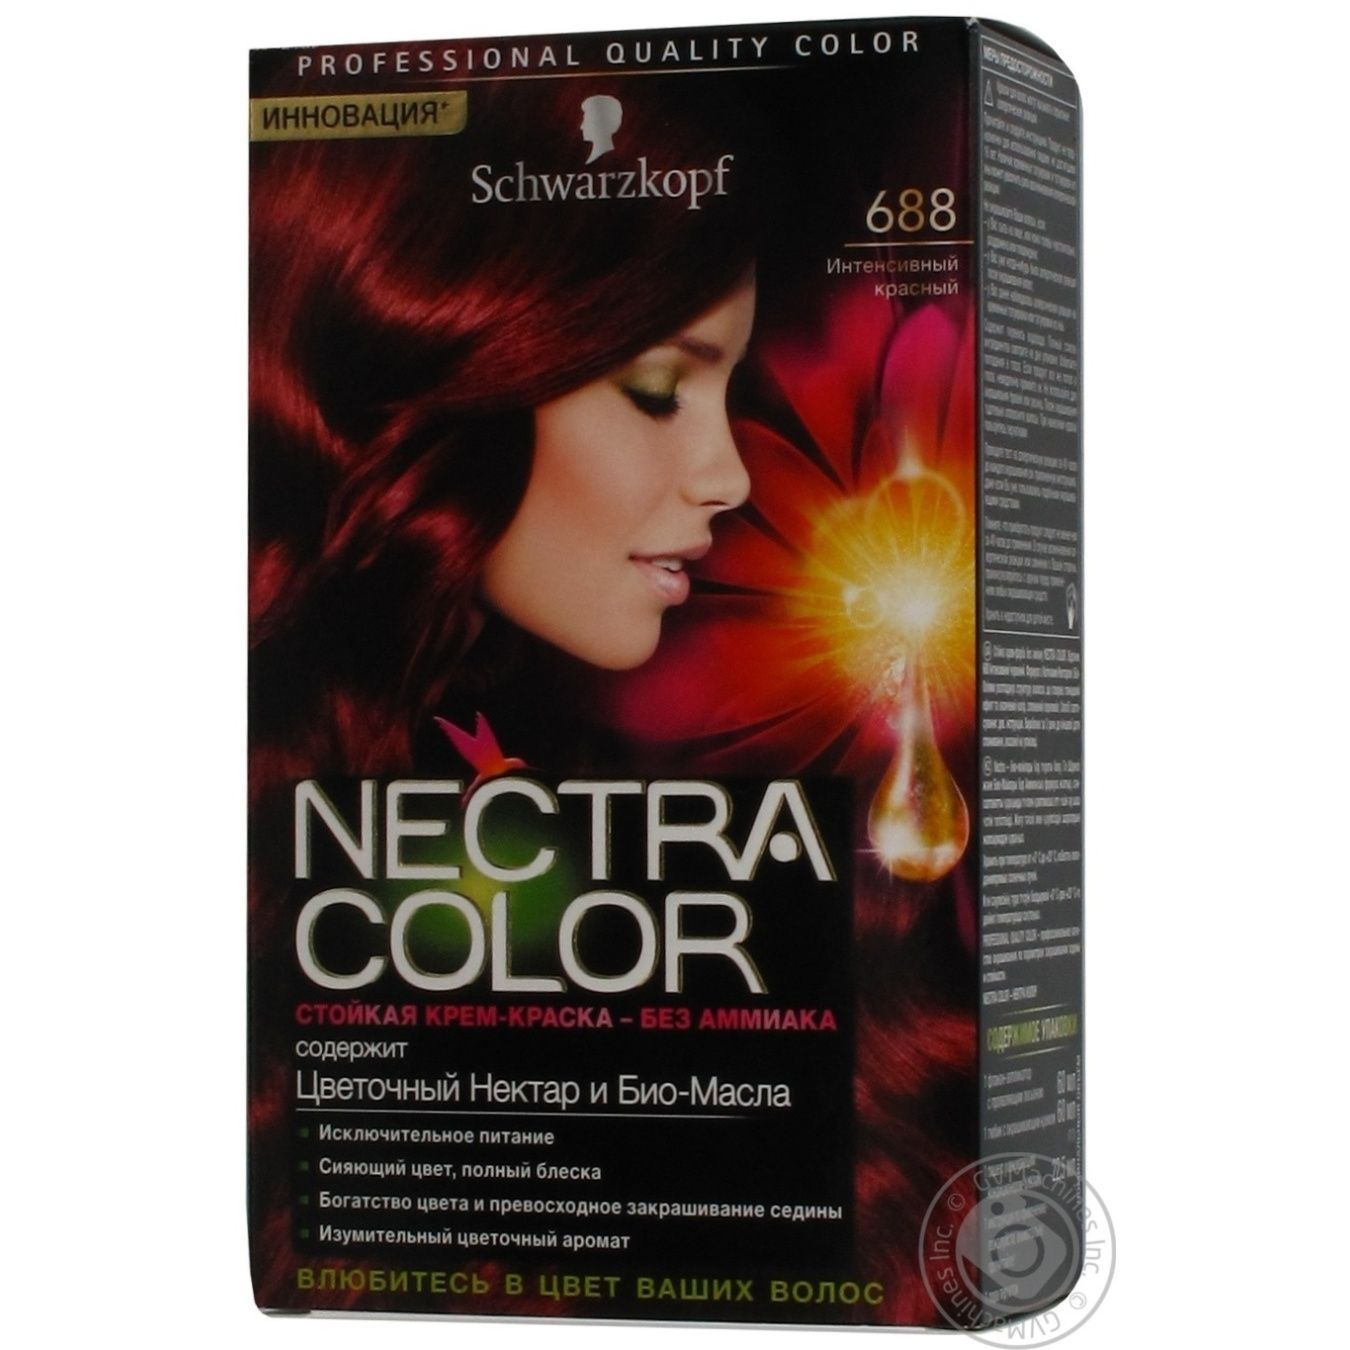 color schwarzkopf nectra intense red ammonia free for hair germany - Schwarzkopf Nectra Color